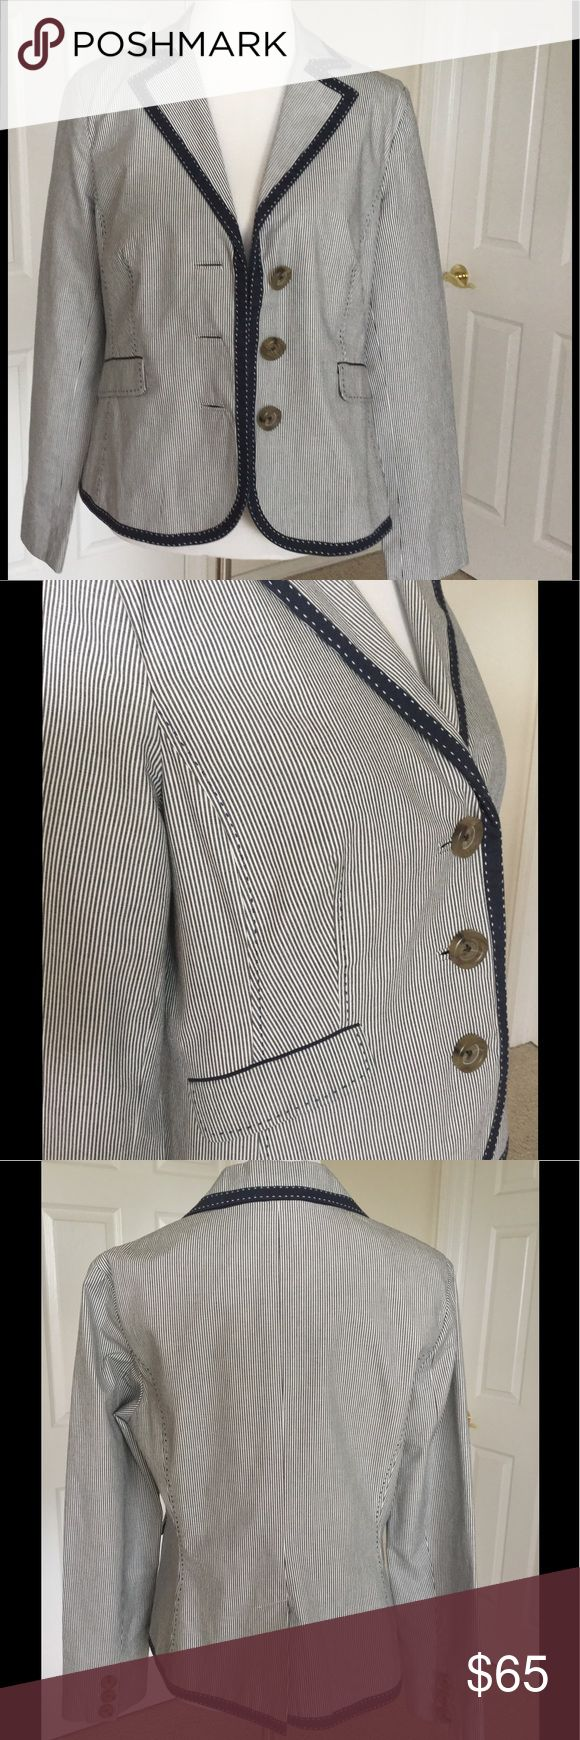 """🆕 Listing Boden Blue & White Striped Jacket Fantastic jacket with adorable detailing. Front pockets are still sewn shut. Excellent used condition. No damage or problems. Bust 40"""", length from shoulder 24"""", waist 36"""", sleeve length 25"""". 100% cotton. Sleeve lining 100% polyester p. Dry clean 🎀Bundle discount  ⭐️5 star rated Suggested User 🚭Smoke free home 🚫No trades please  😍 Thank you for shopping with me. Please ask all questions before purchase Boden Jackets & Coats Blazers"""